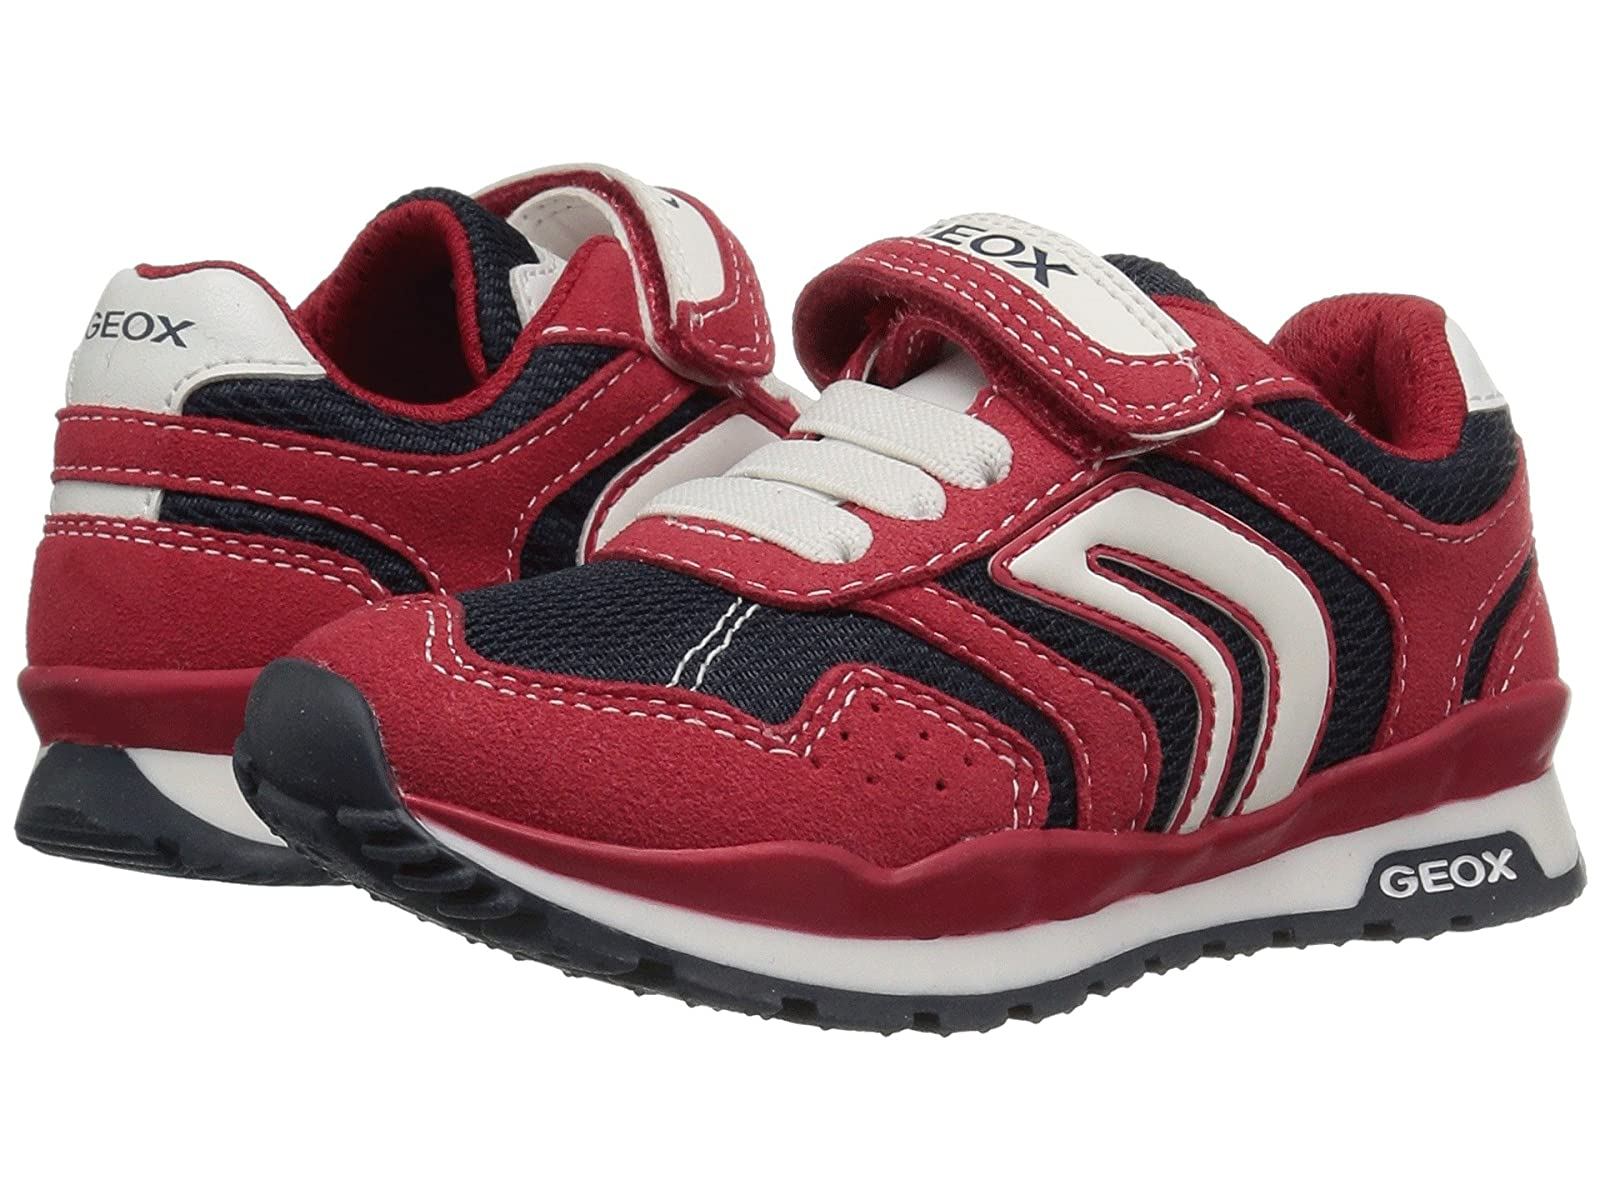 Geox Kids Pavel 18 (Toddler/Little Kid)Atmospheric grades have affordable shoes